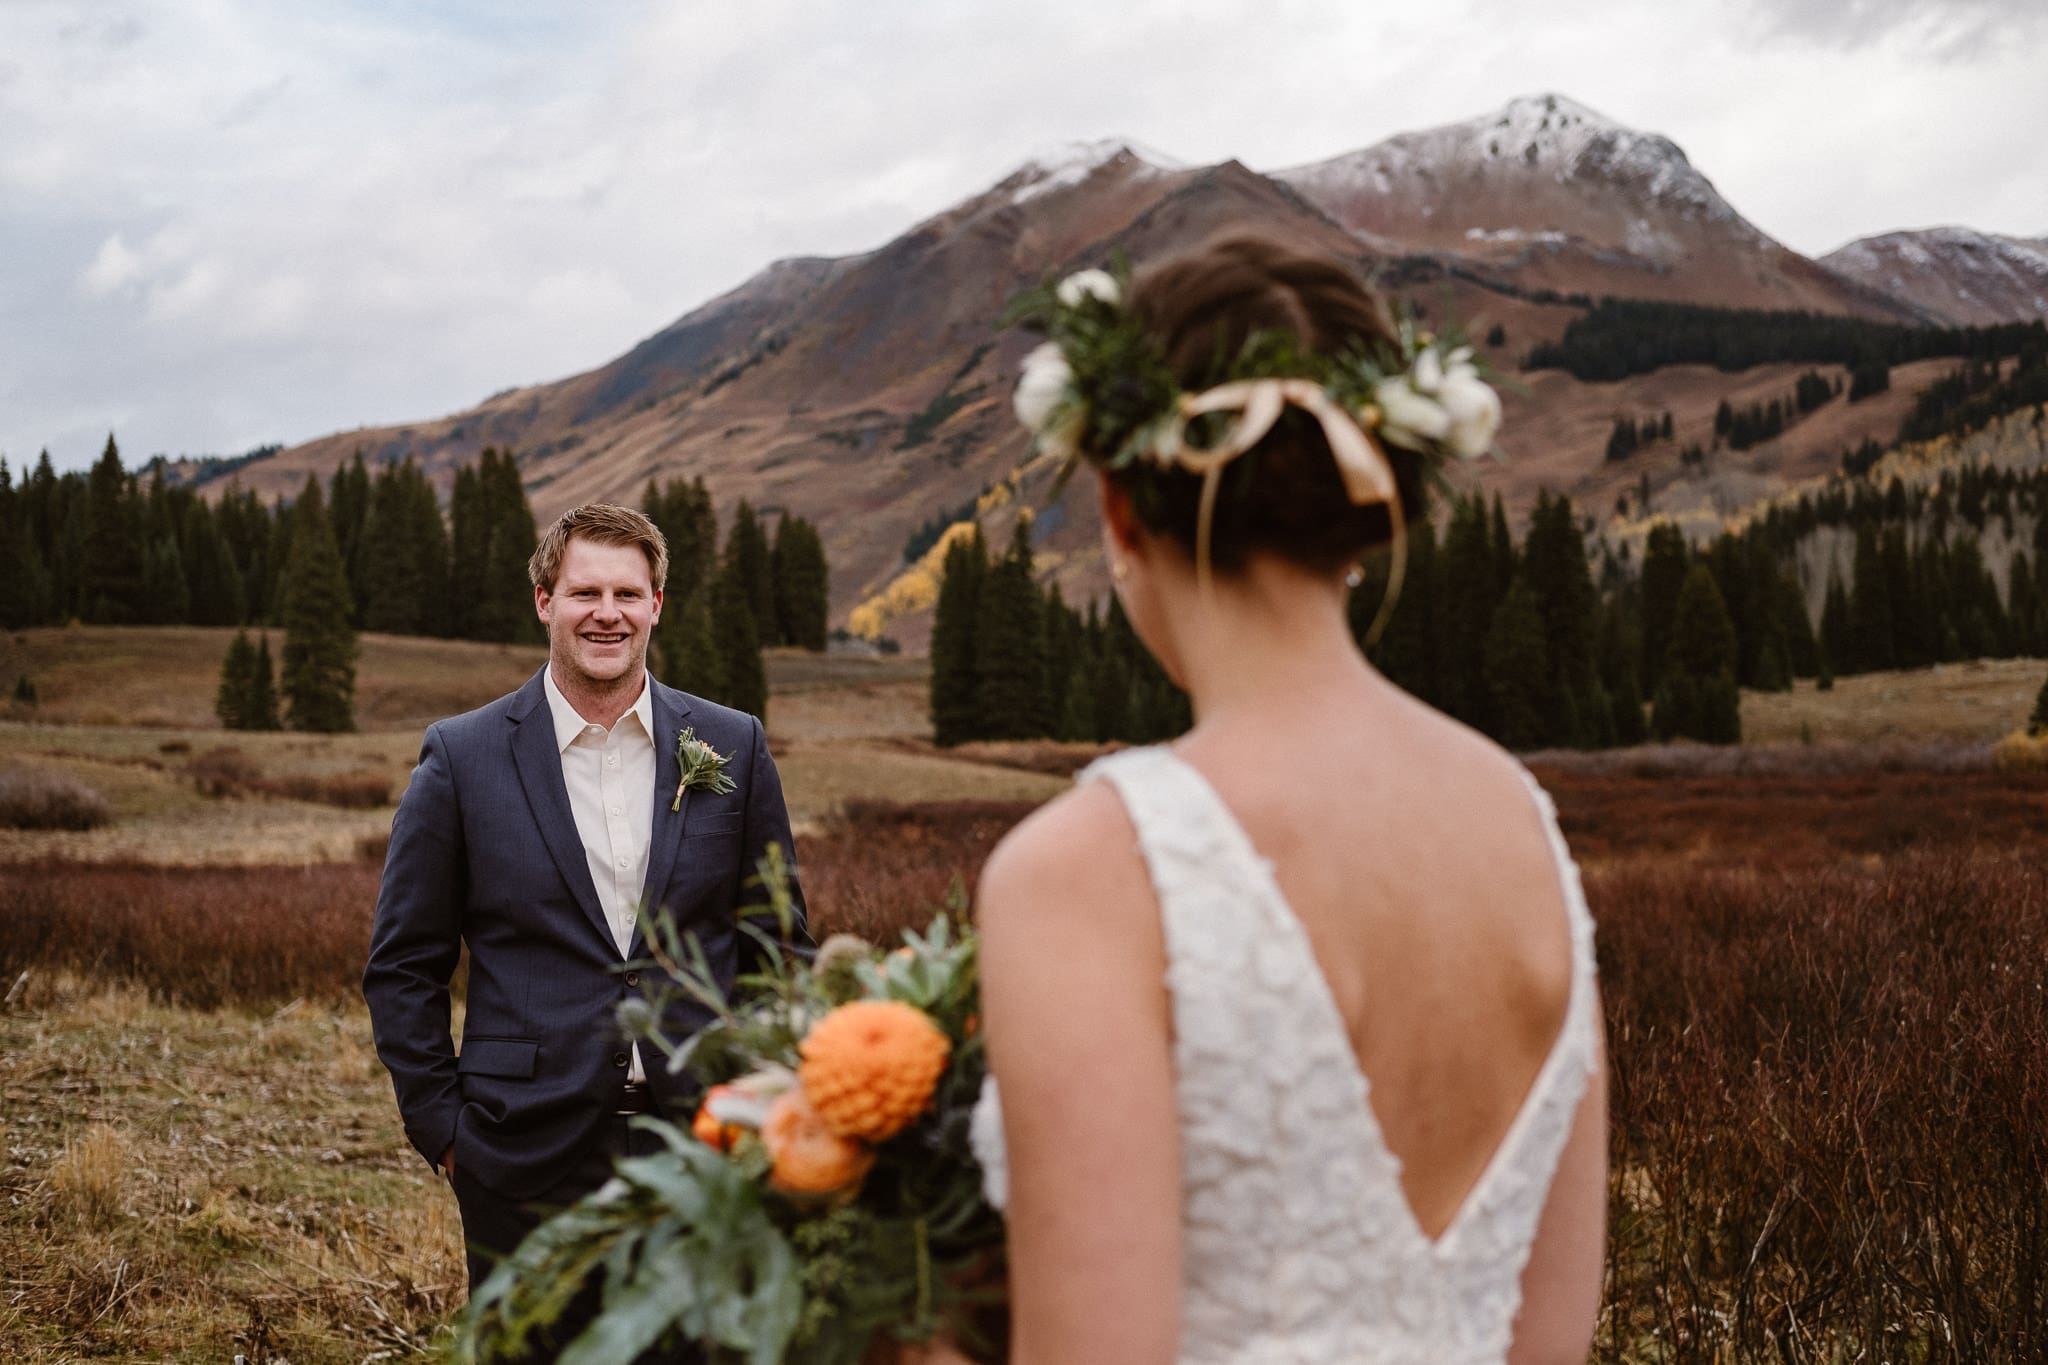 Crested Butte Wedding Photographer, Scarp Ridge Lodge intimate elopement, self solemnized elopement in Colorado, bride and groom portraits, Colorado mountain adventure wedding, bride wearing floral crown, fall color bouquet with orange flowers by From the Ground Up, wedding bouquet, groom looking at bride